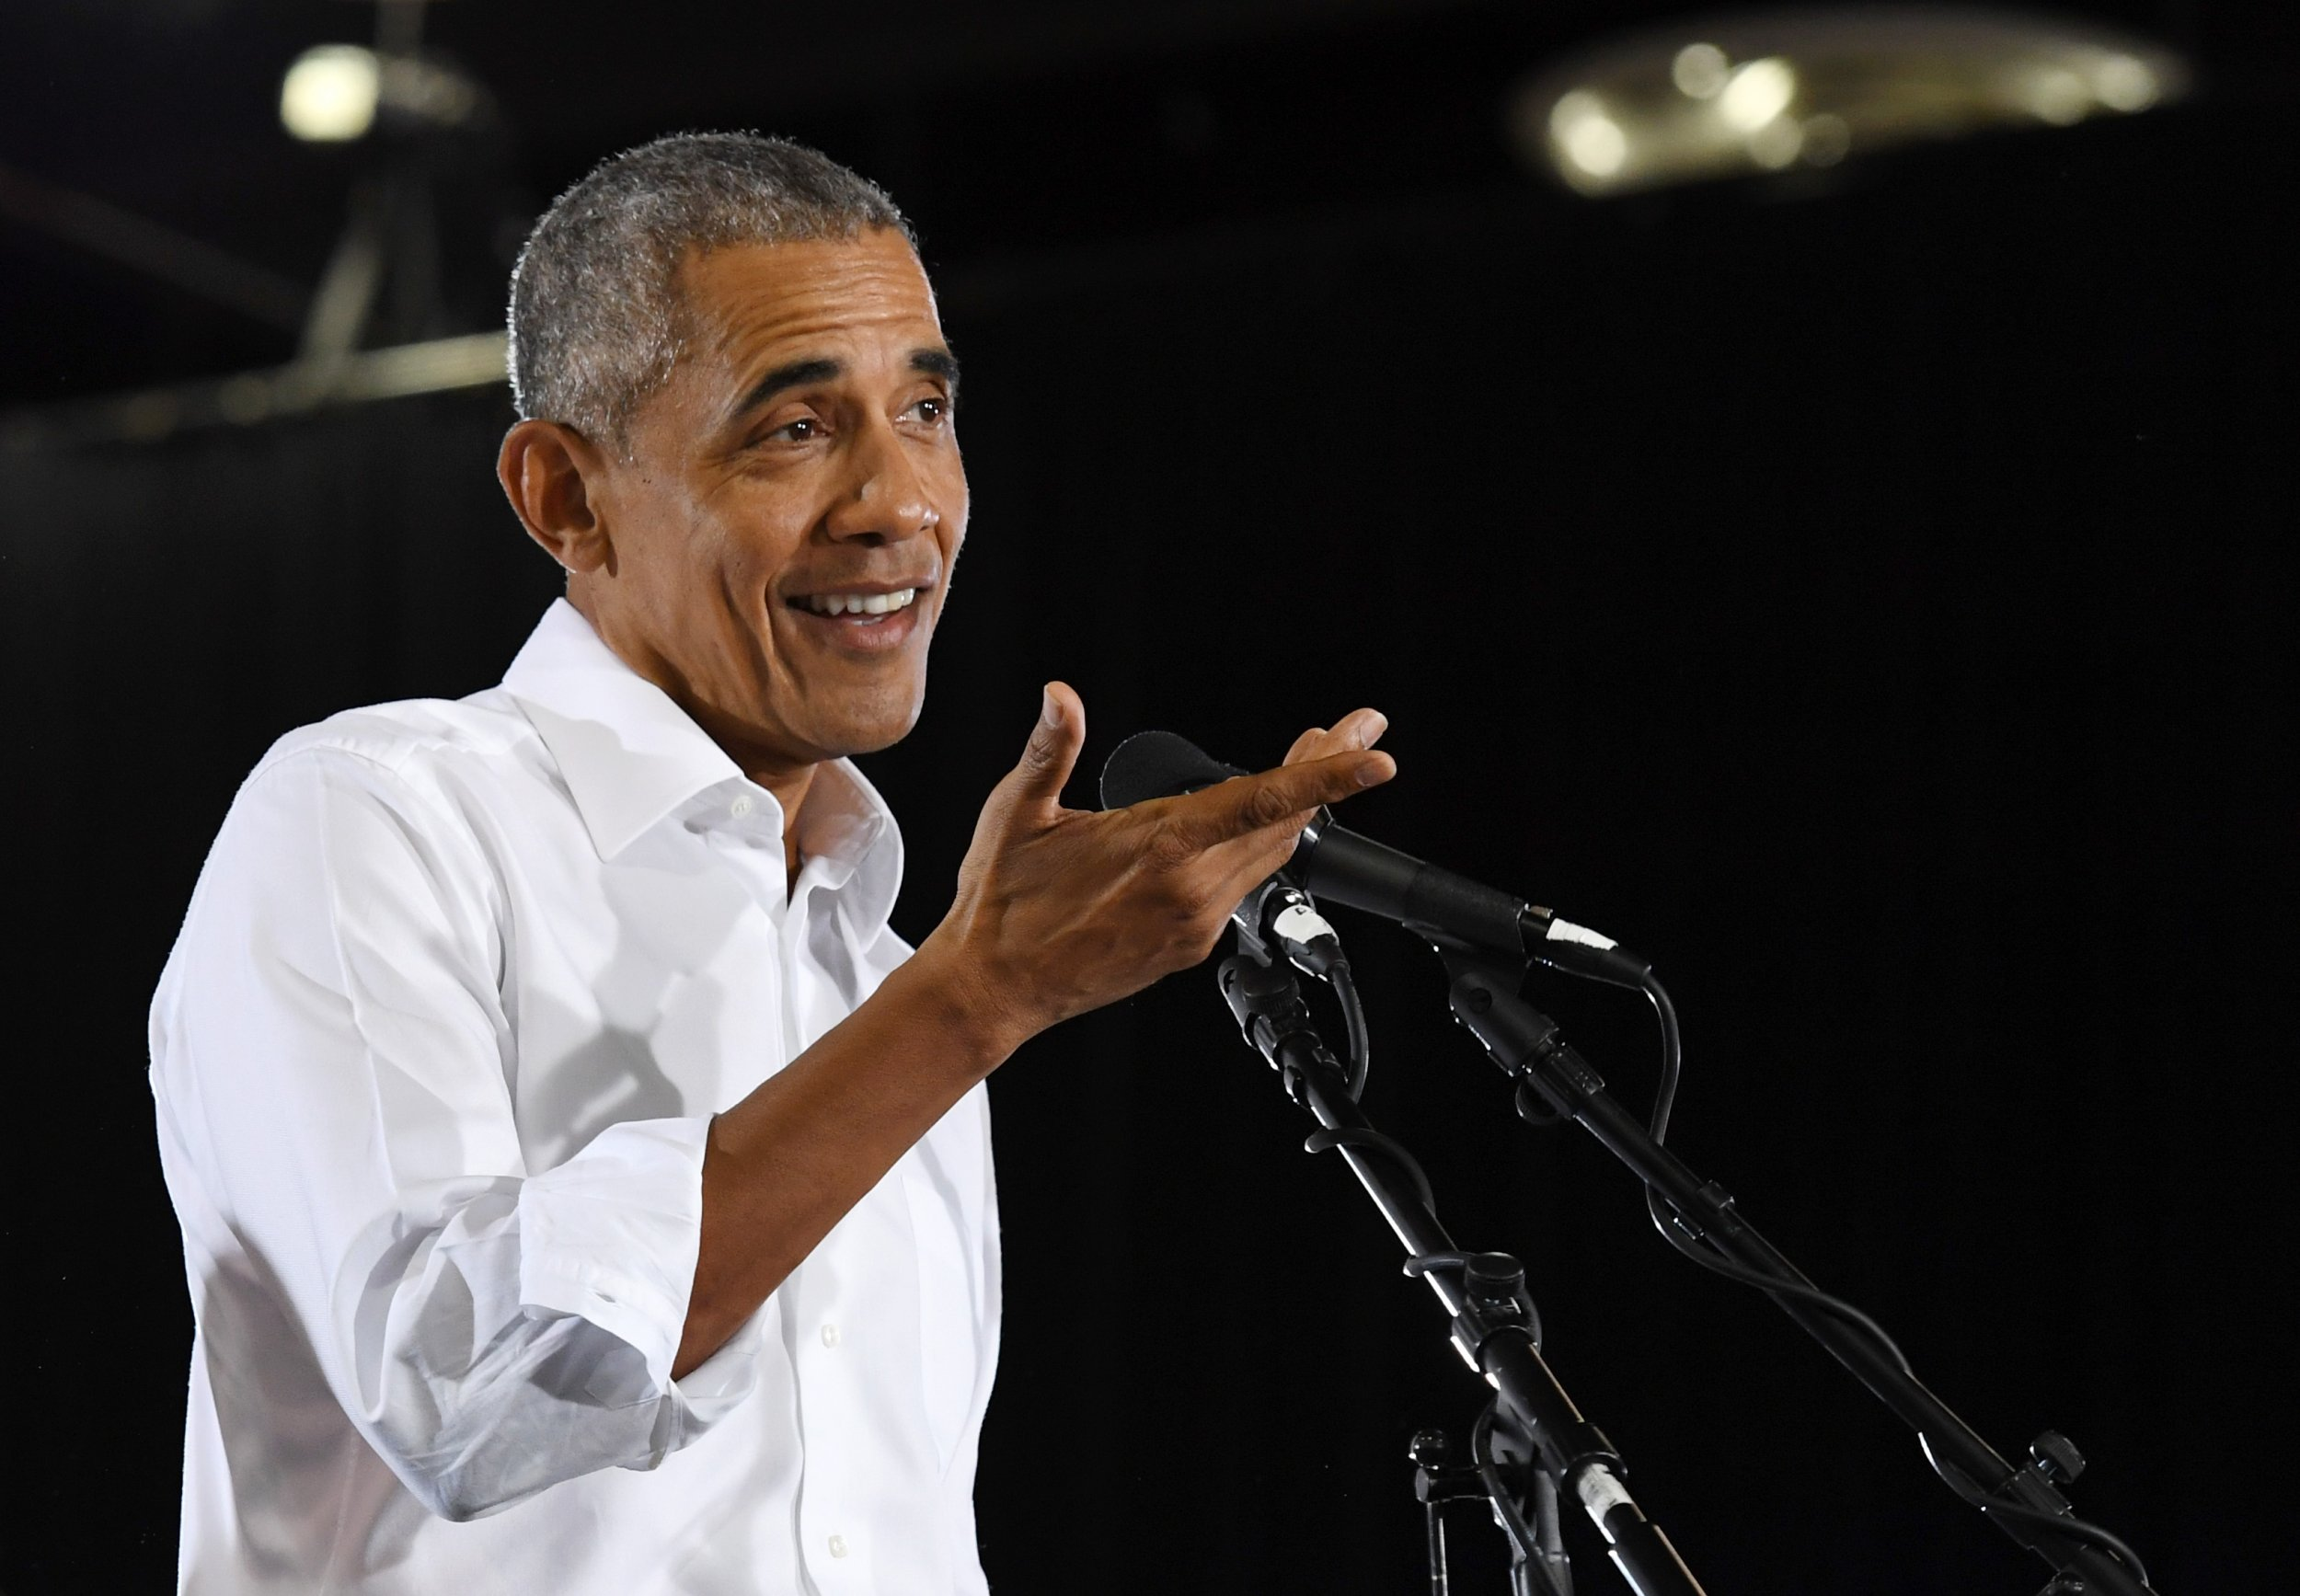 Barack Obama Says Trump Administration, Republicans Have Faced 'Enough Indictments to Field a Football Team'